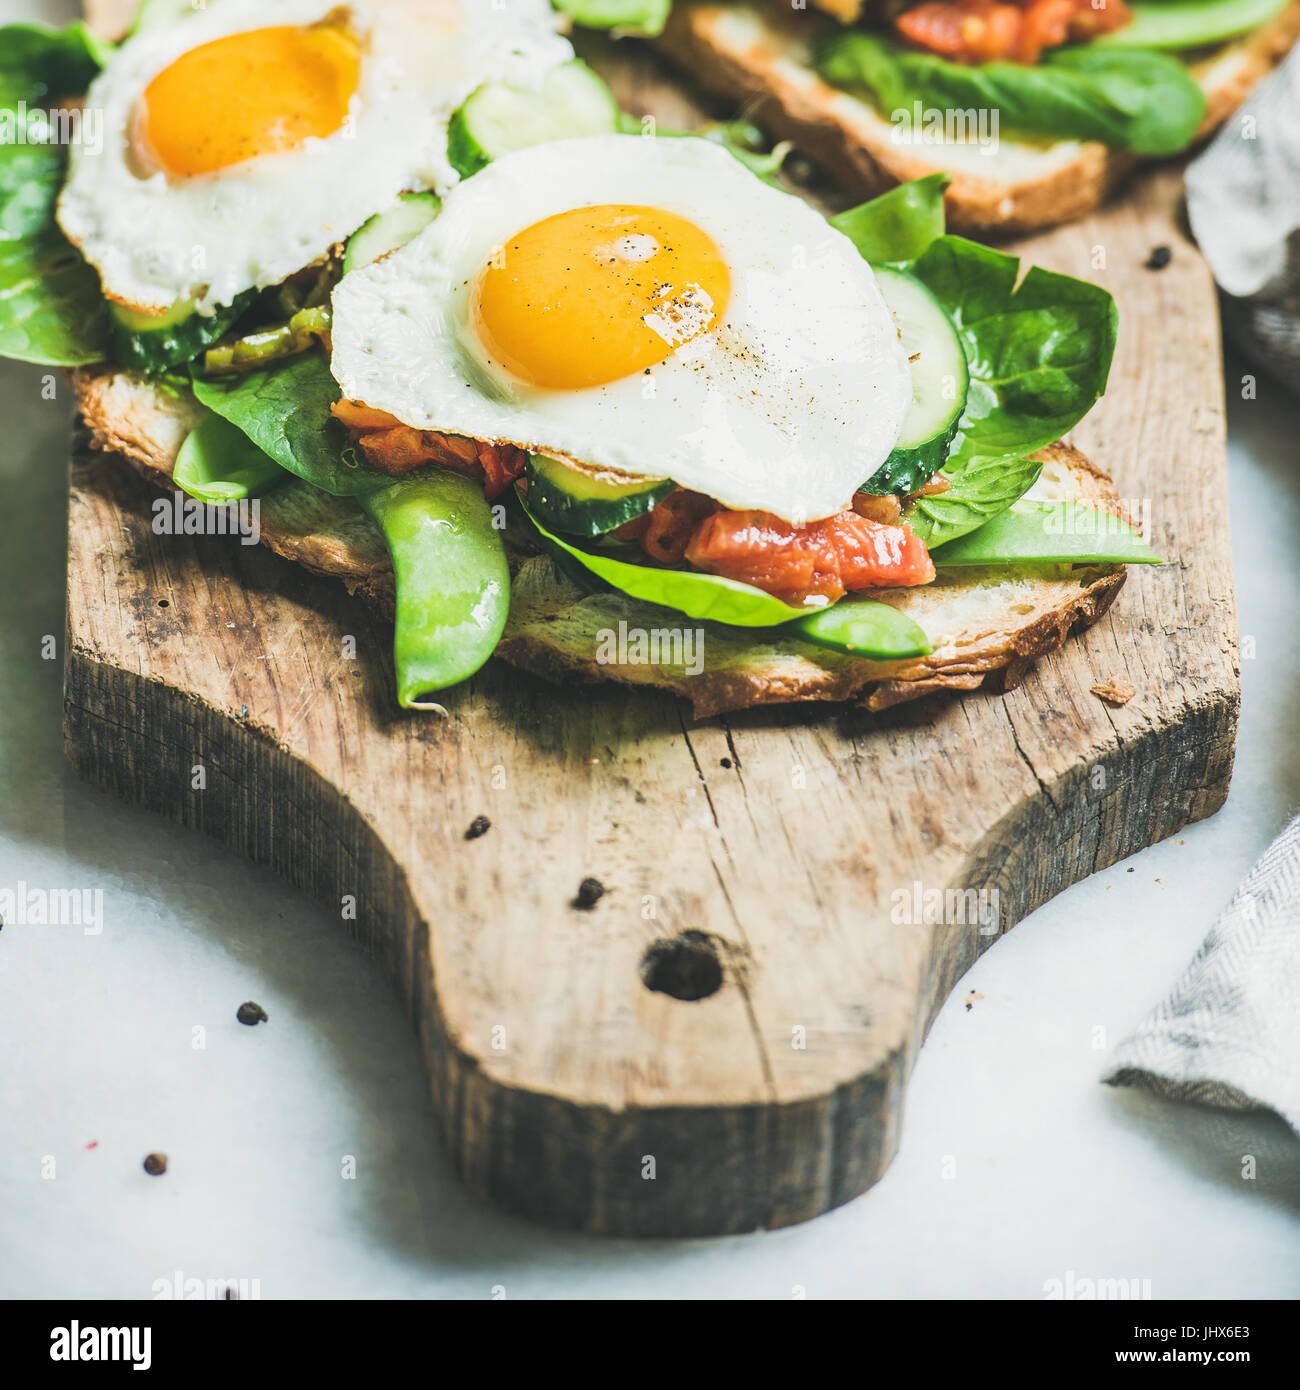 Bread toasts with fried eggs and fresh vegetables, square crop Stock Photo